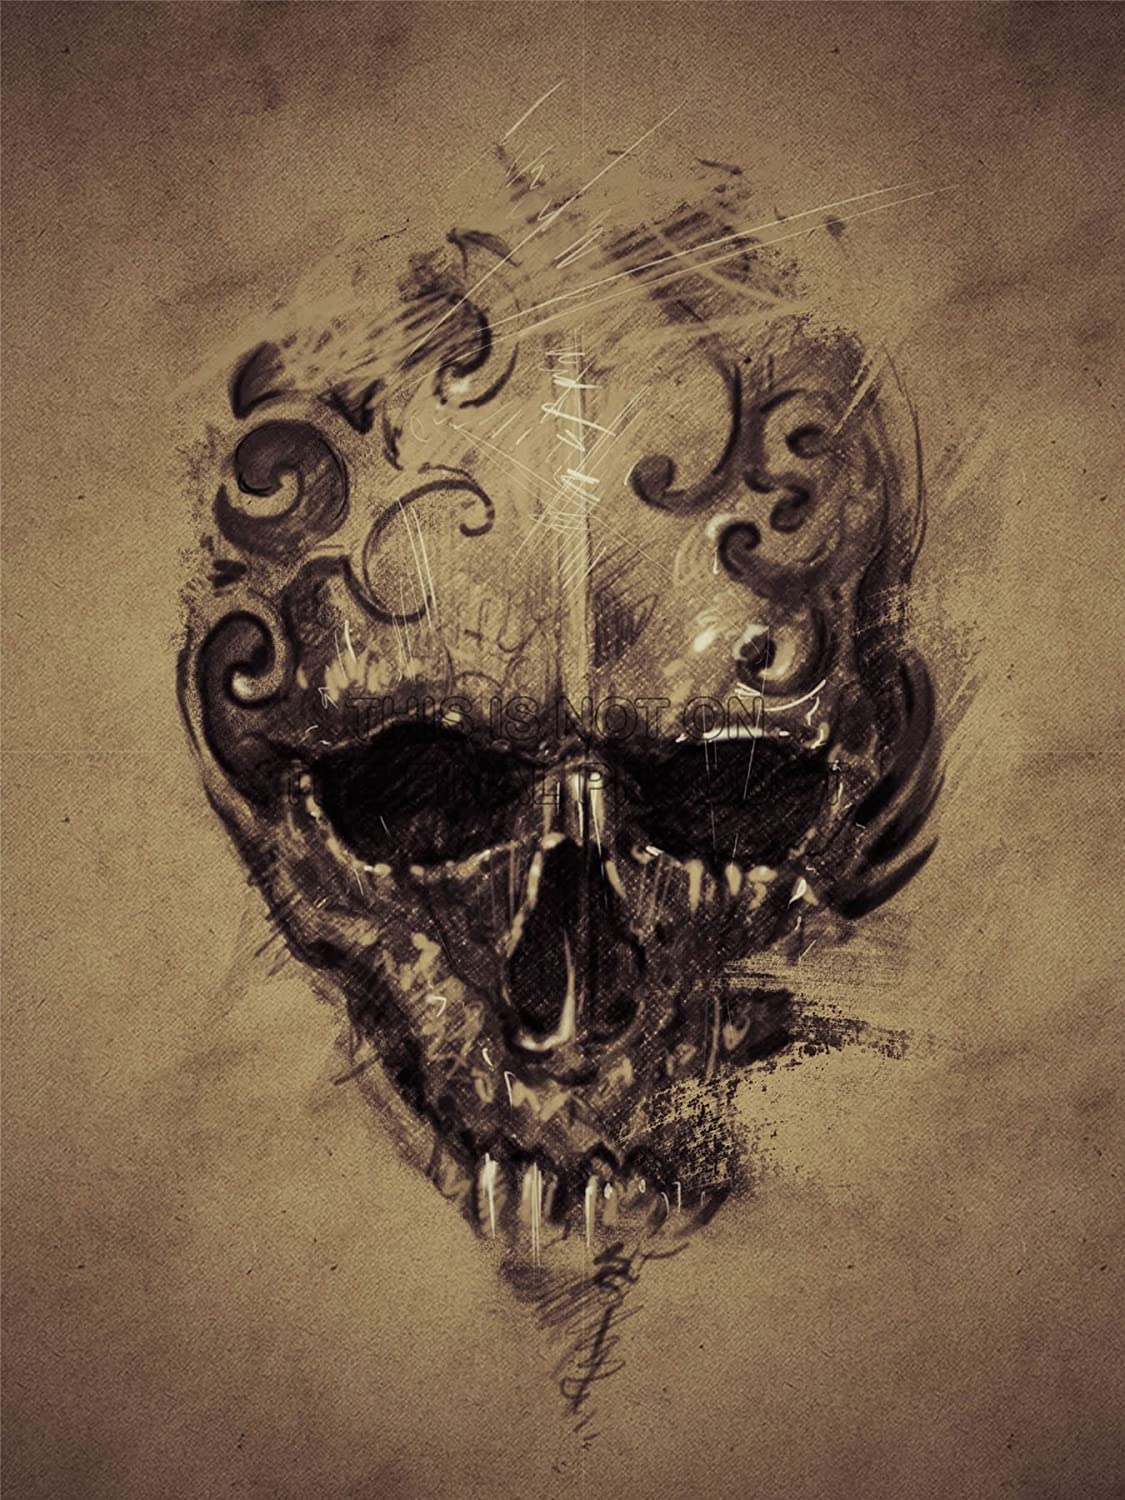 PAINTING DRAWING TATTOO CREEPY SKULL GOTHIC GRUNGE ART PRINT ...